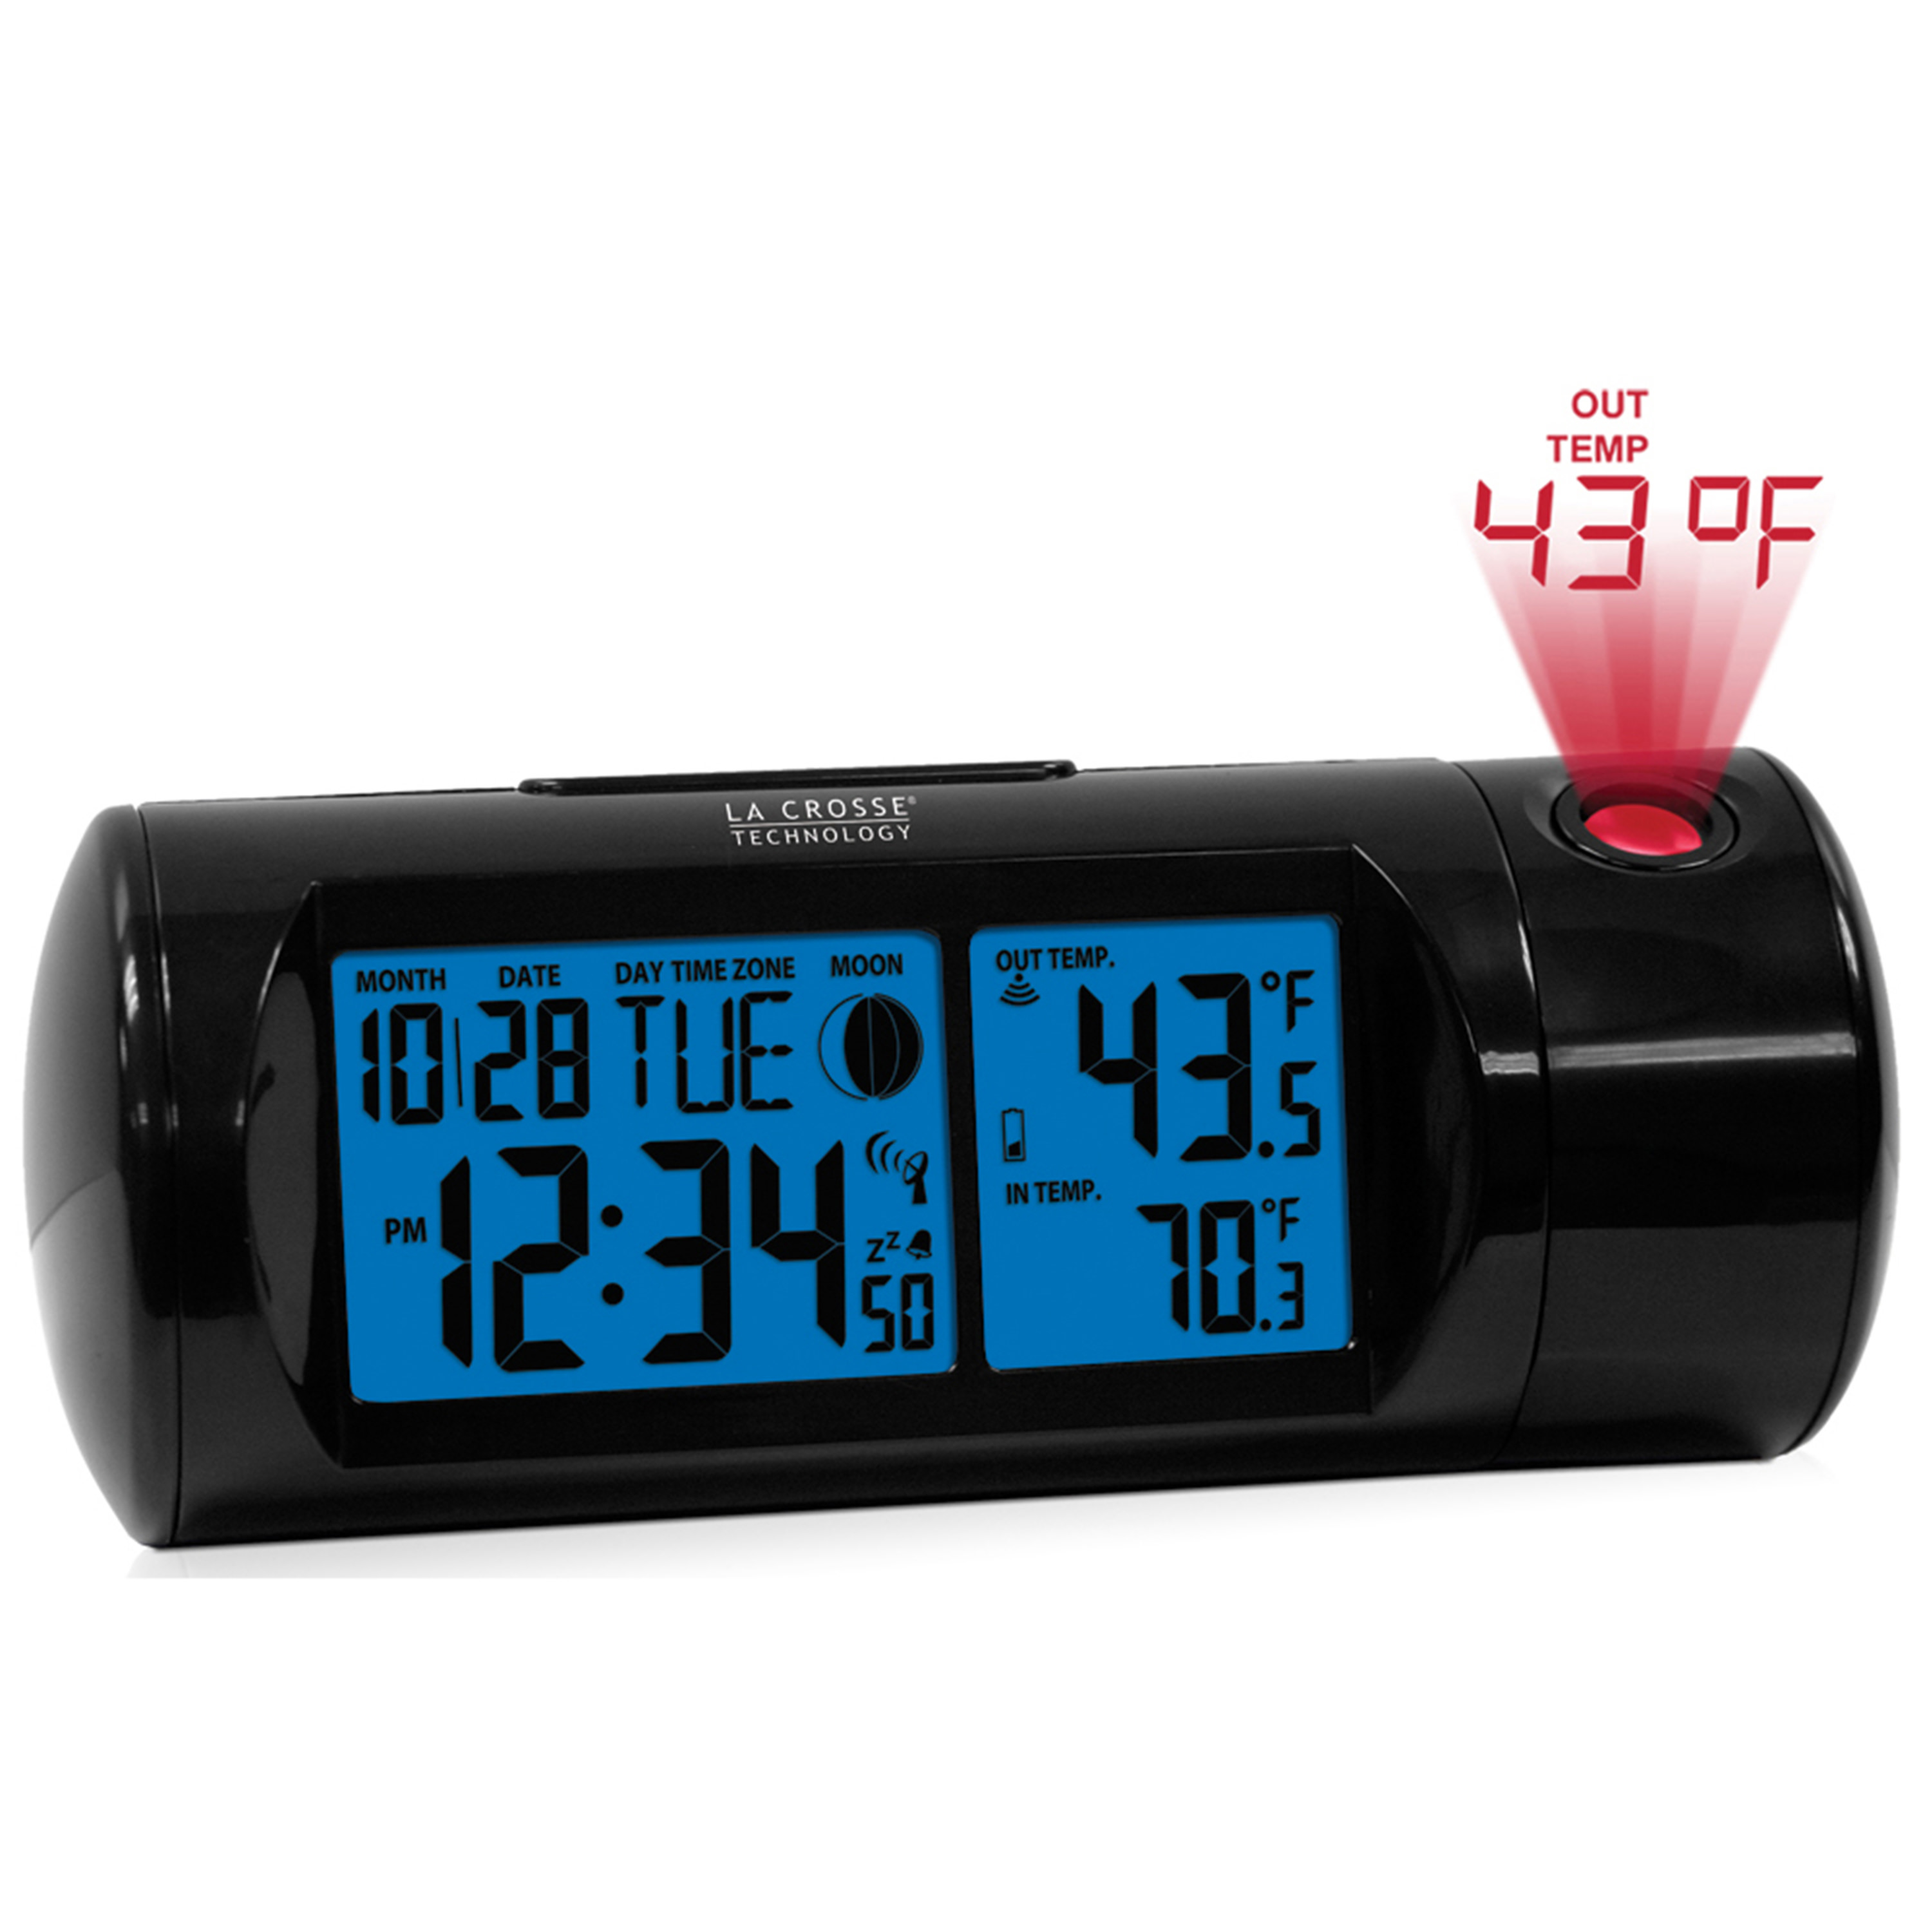 La Crosse Technology 616-143 Atomic Projection Alarm clock with Indoor and Outdoor temperature